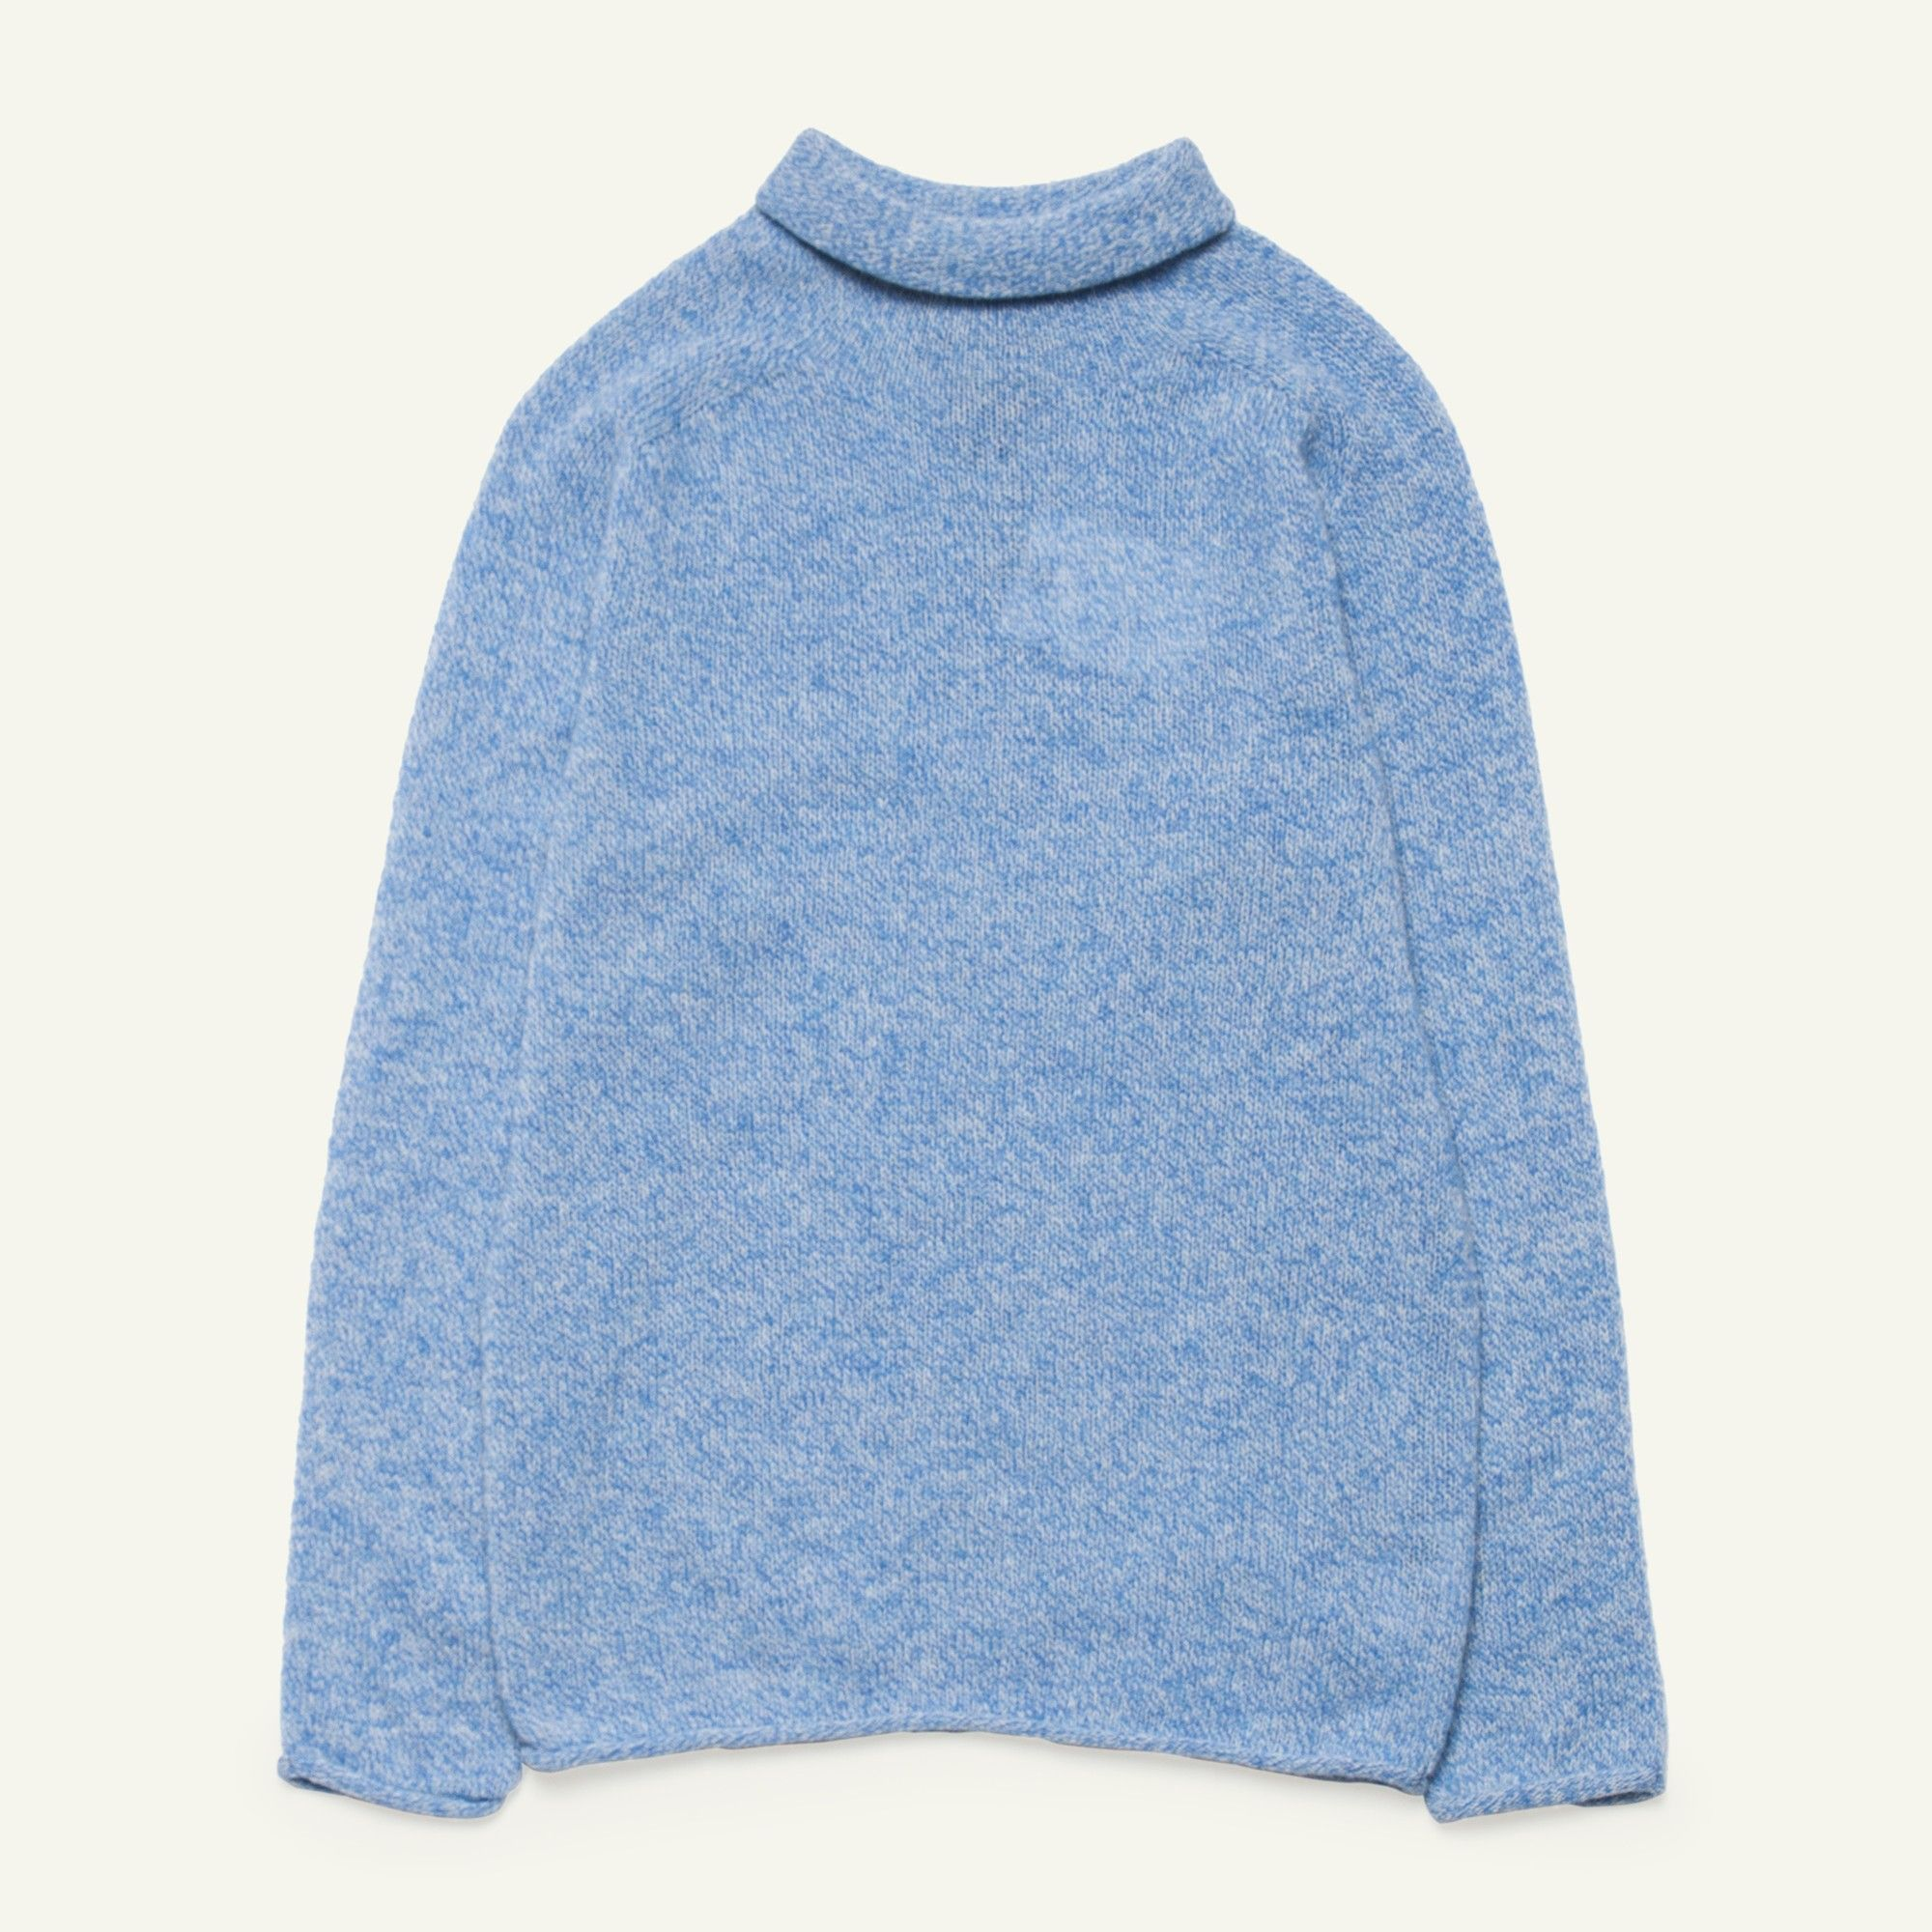 Howlin' Plastic Dream Sweater